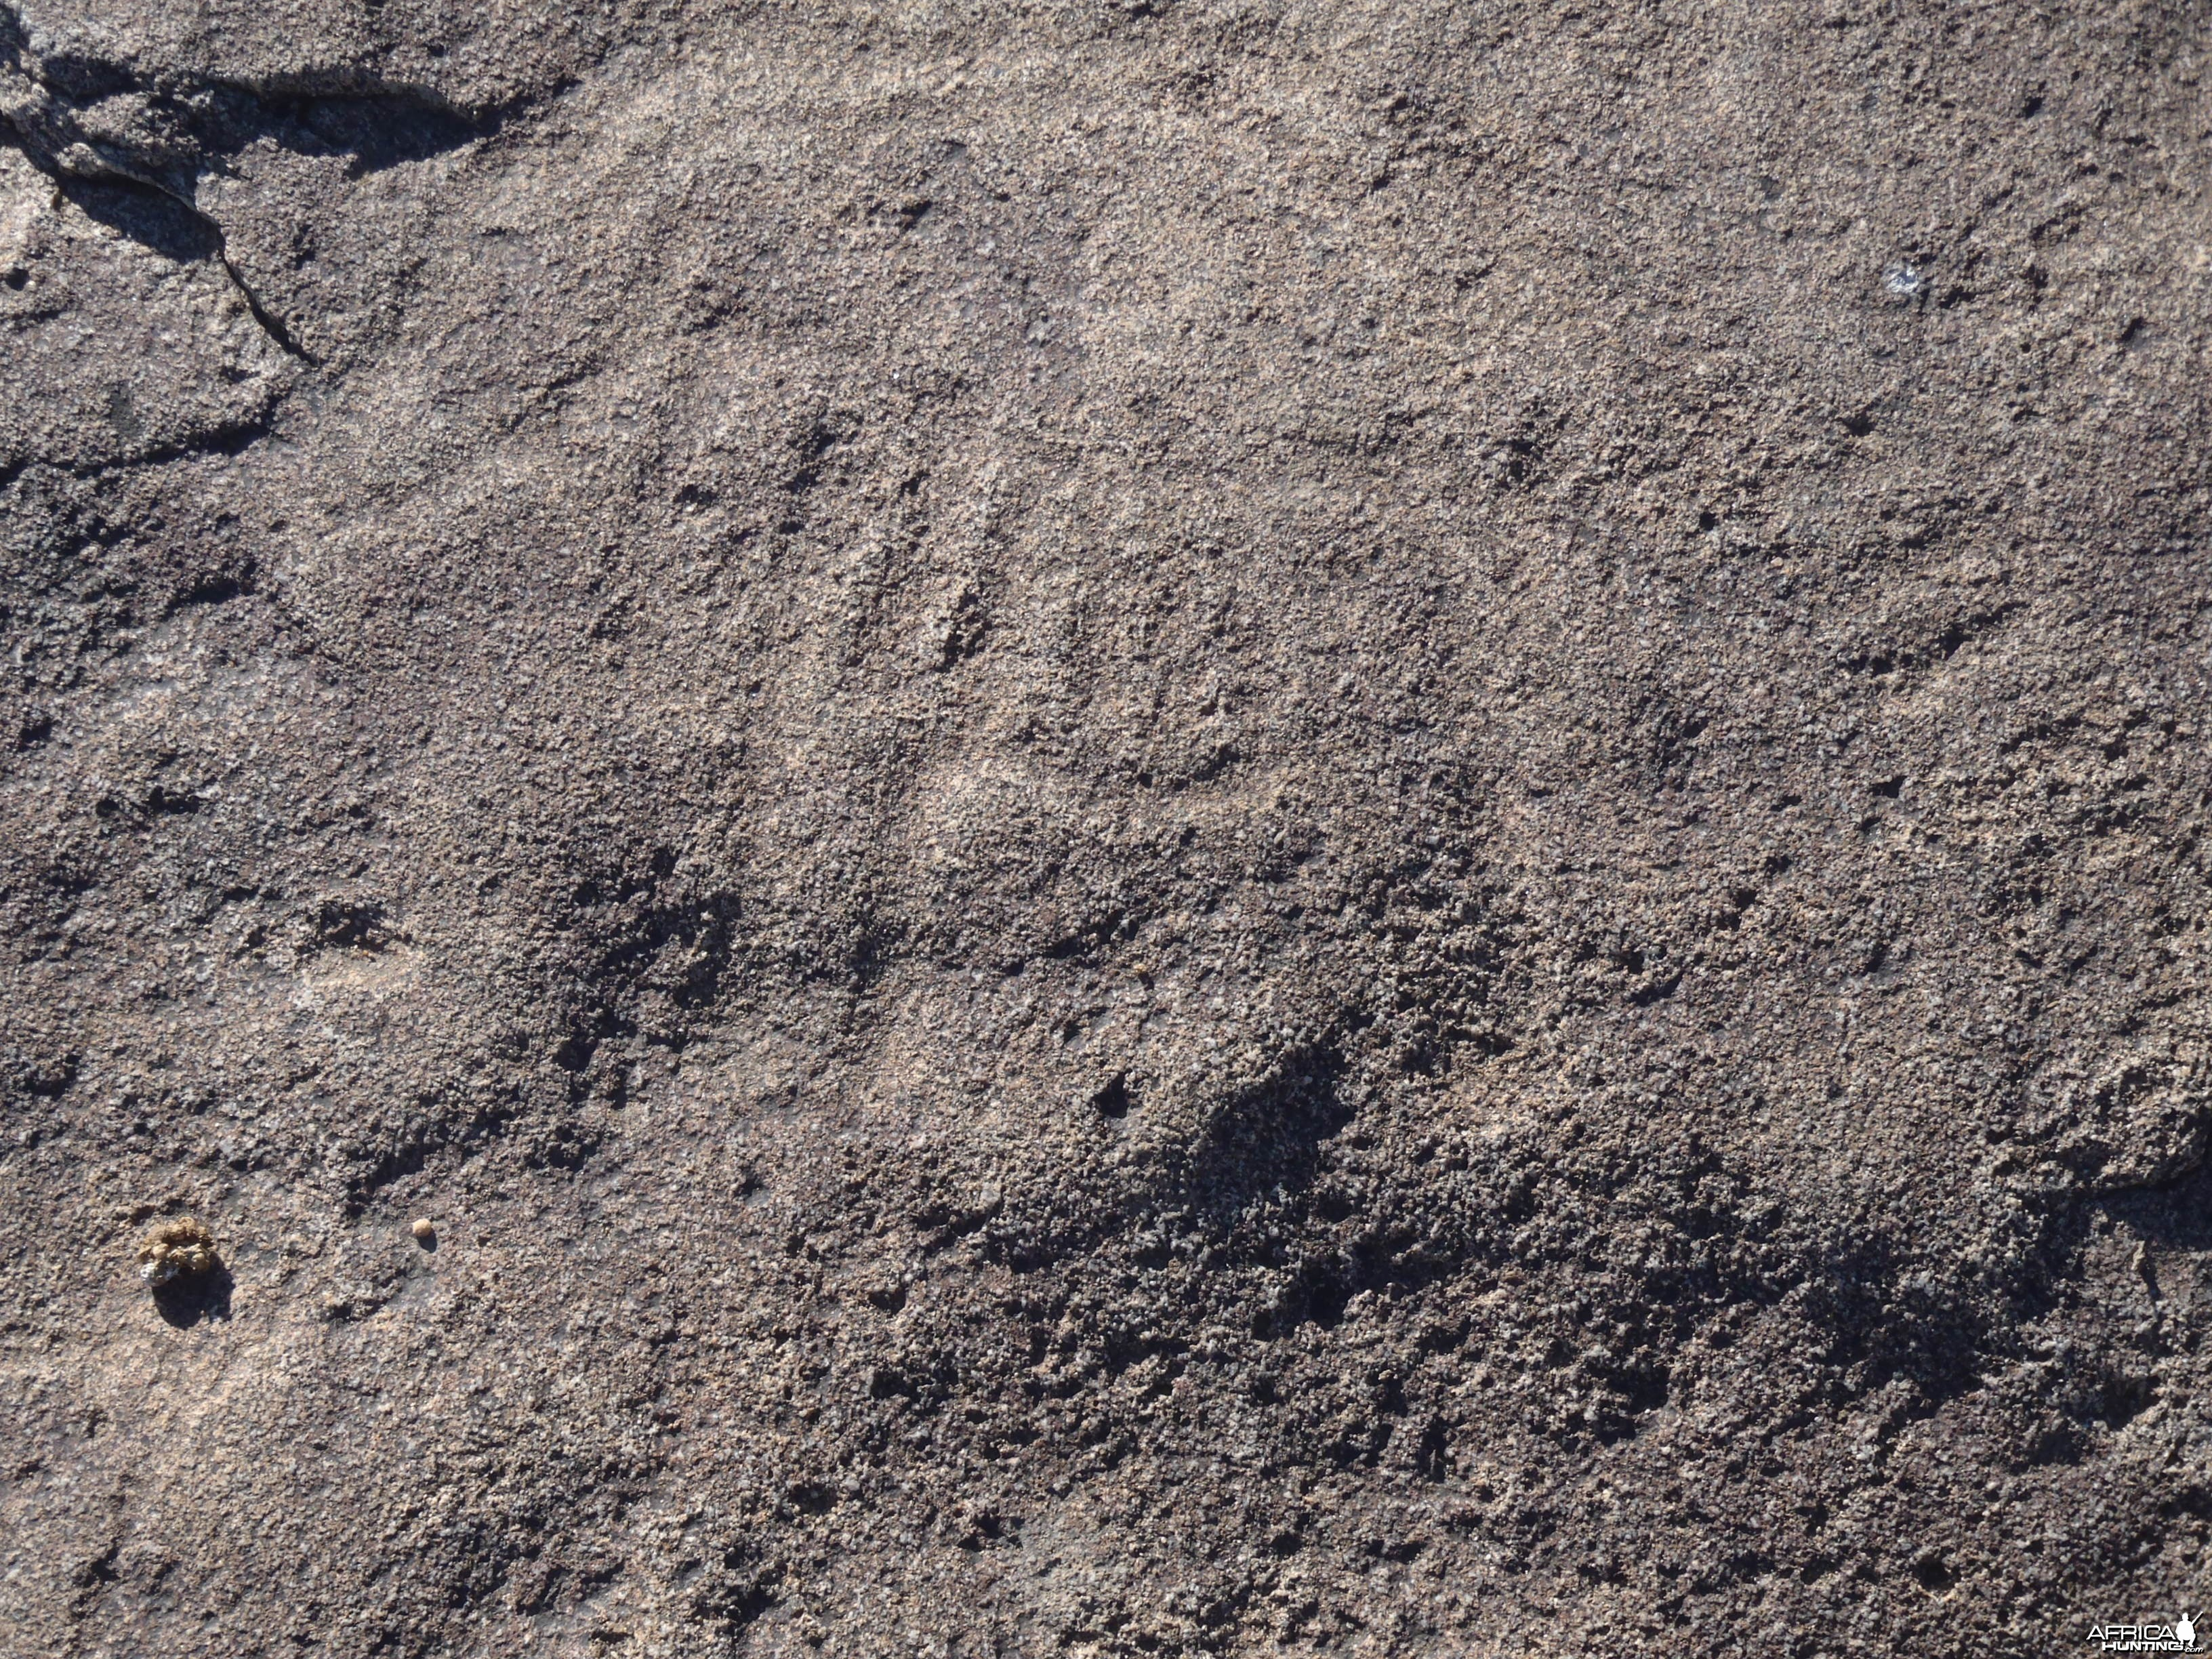 Bushman rock engraving of Lion in Namibia